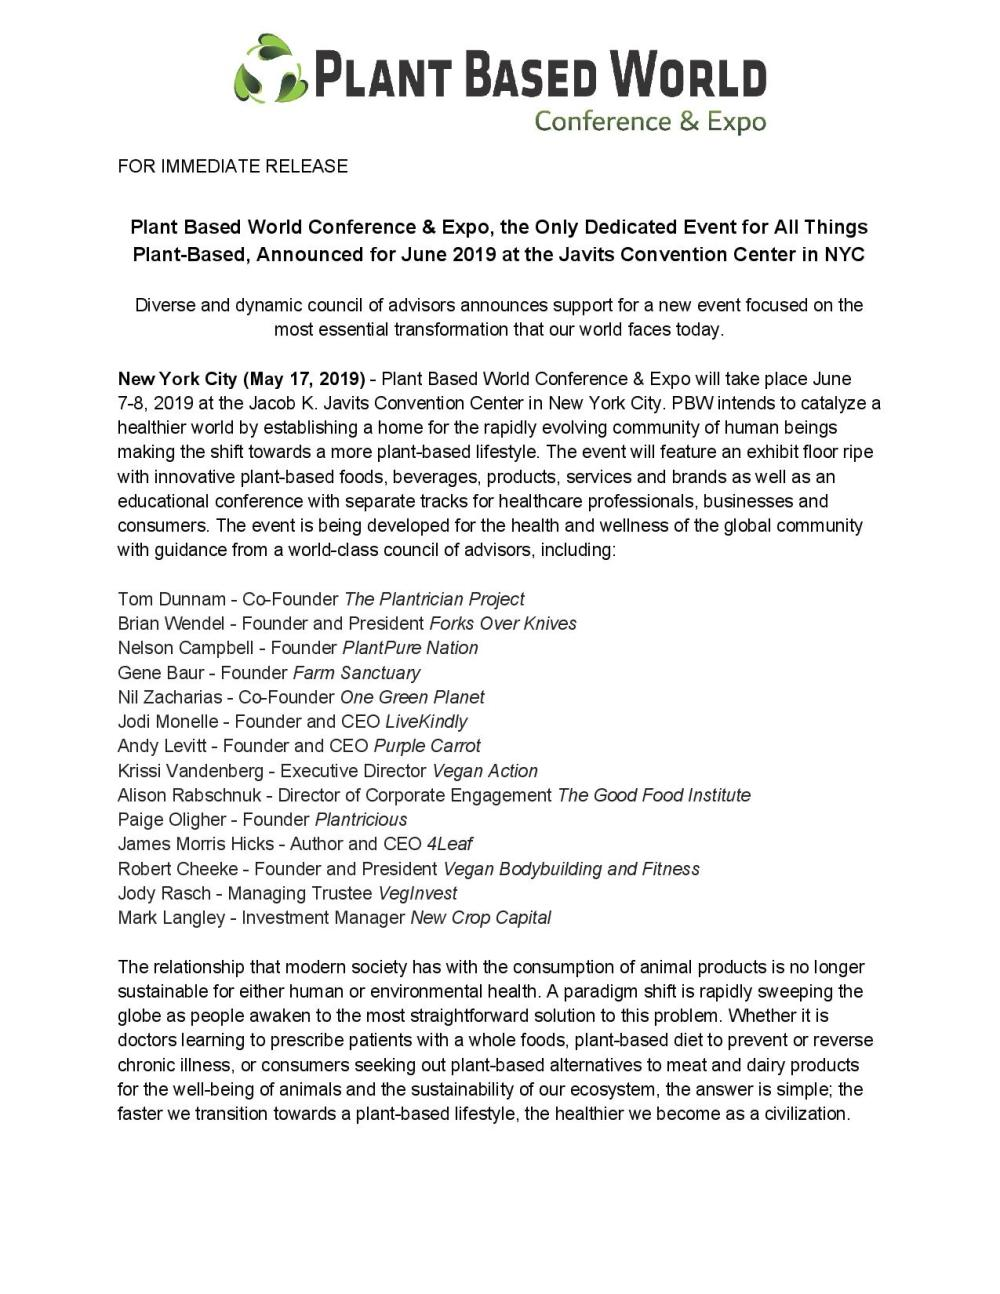 Plant Based World Press Release 5-17-page-001